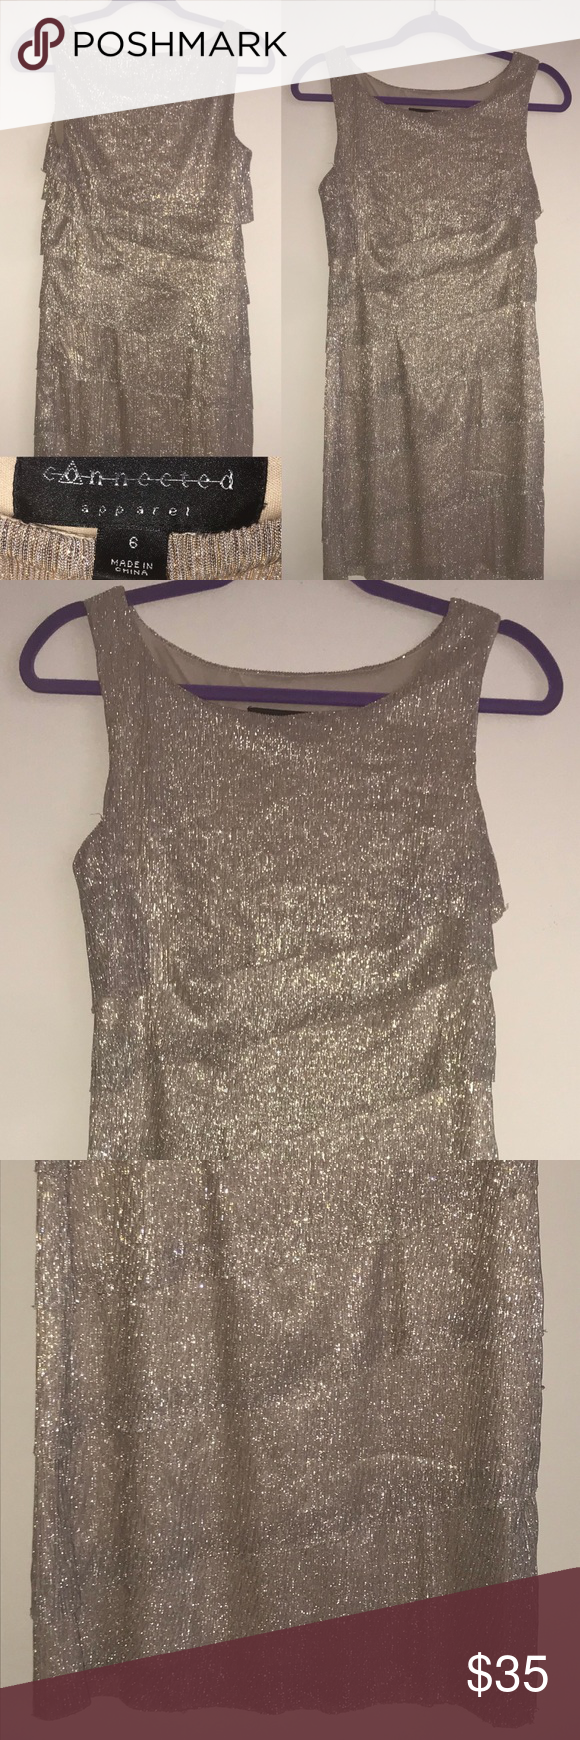 Semiformal dress silver may fit sizes semi formal